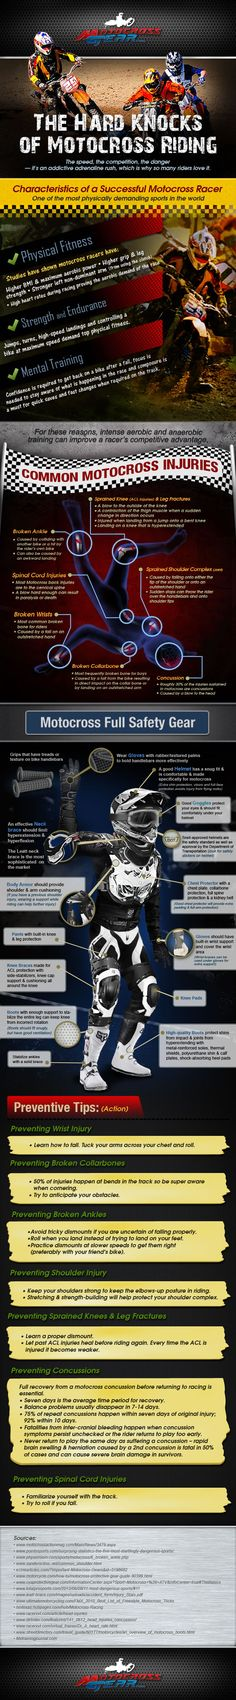 Infographic: The Hard Knocks of Motocross Riding